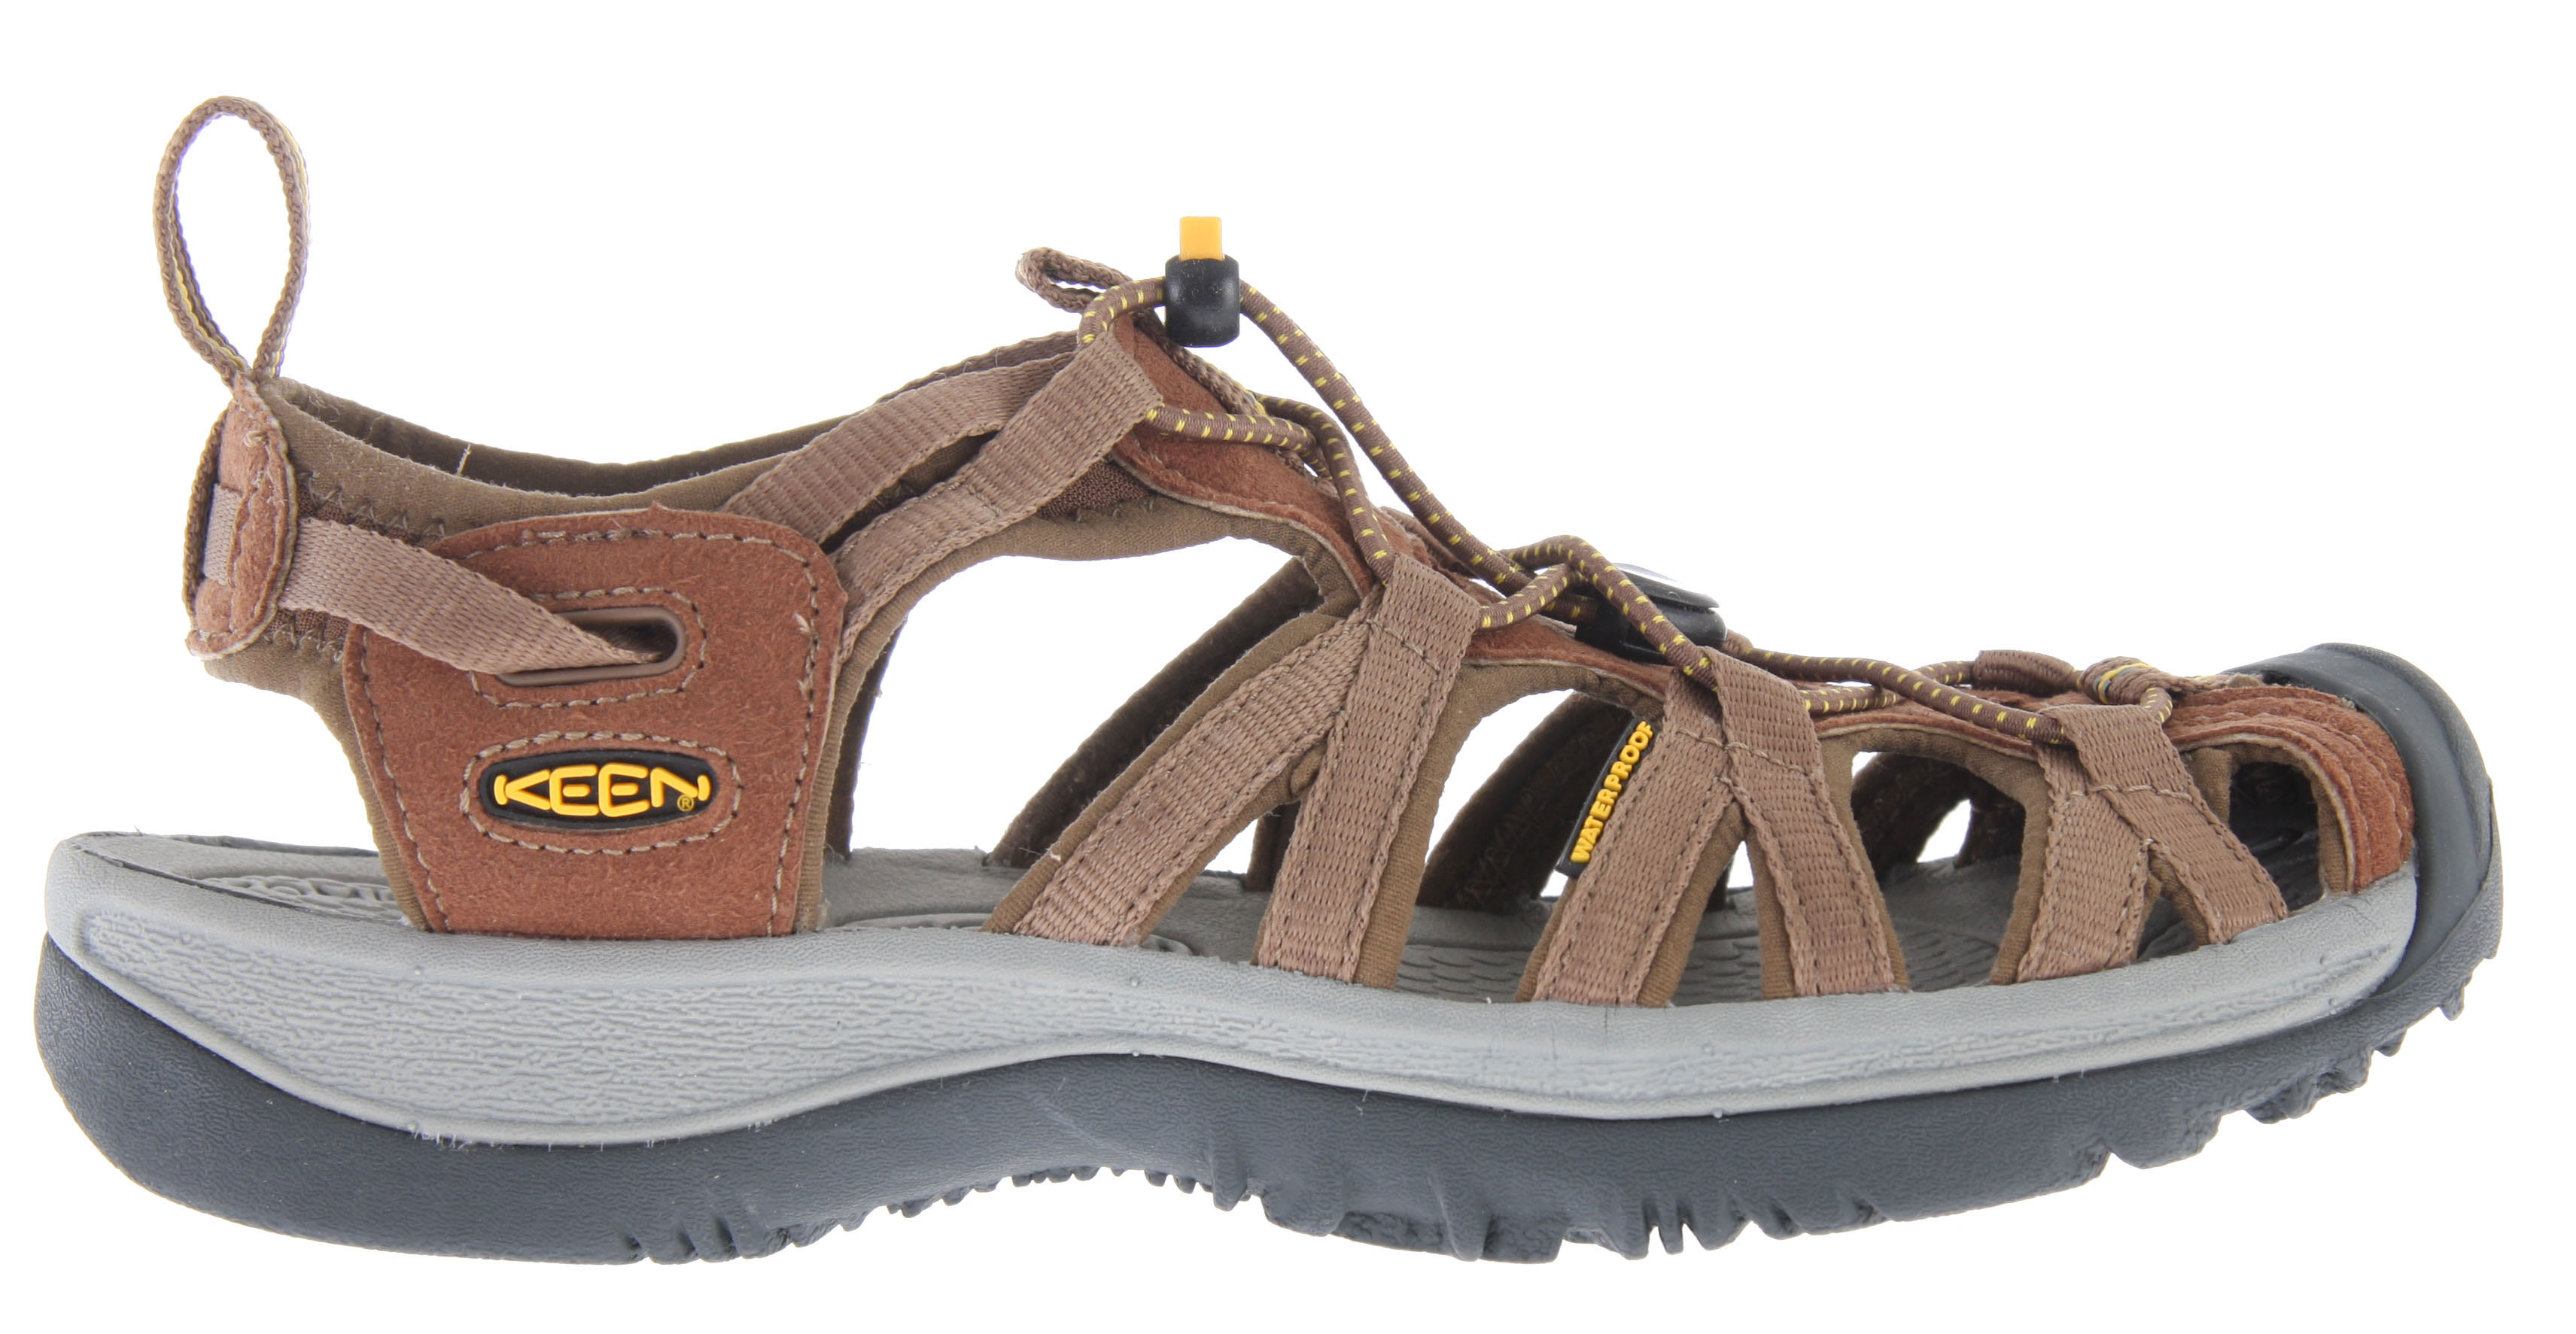 Keen Shoes including Buying the Best Keen Shoes on Sale - Discount